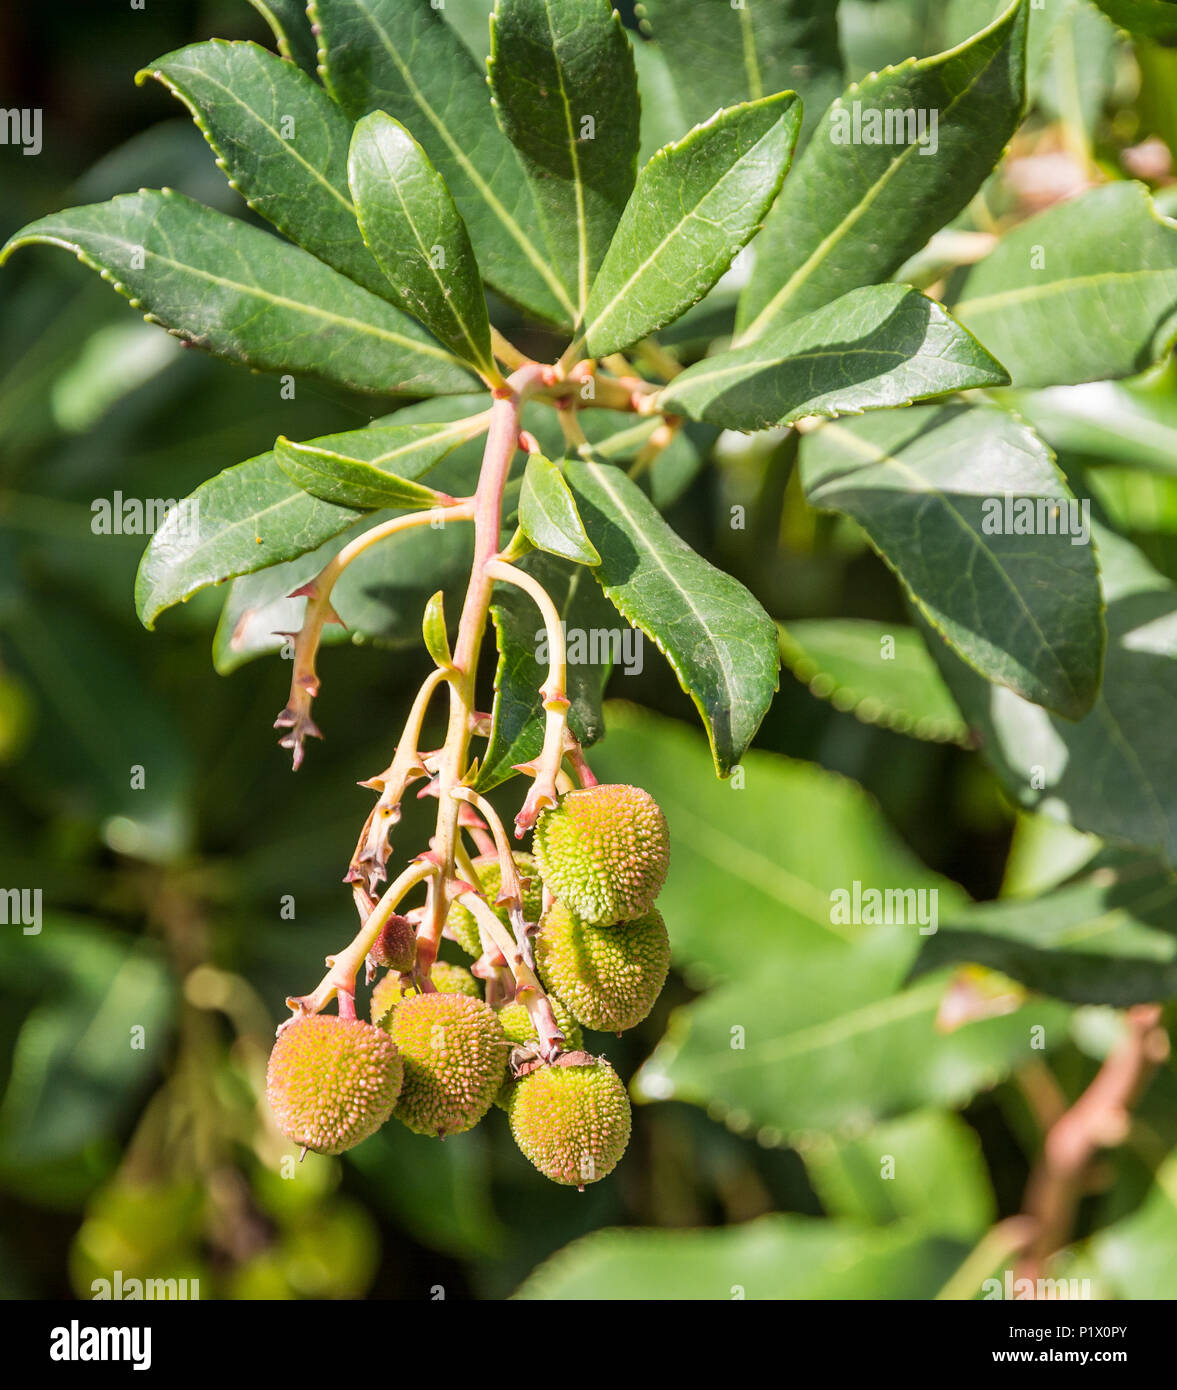 Arbutus Unedo fruit ( Ericaceae). Strawberry fruit - Stock Image